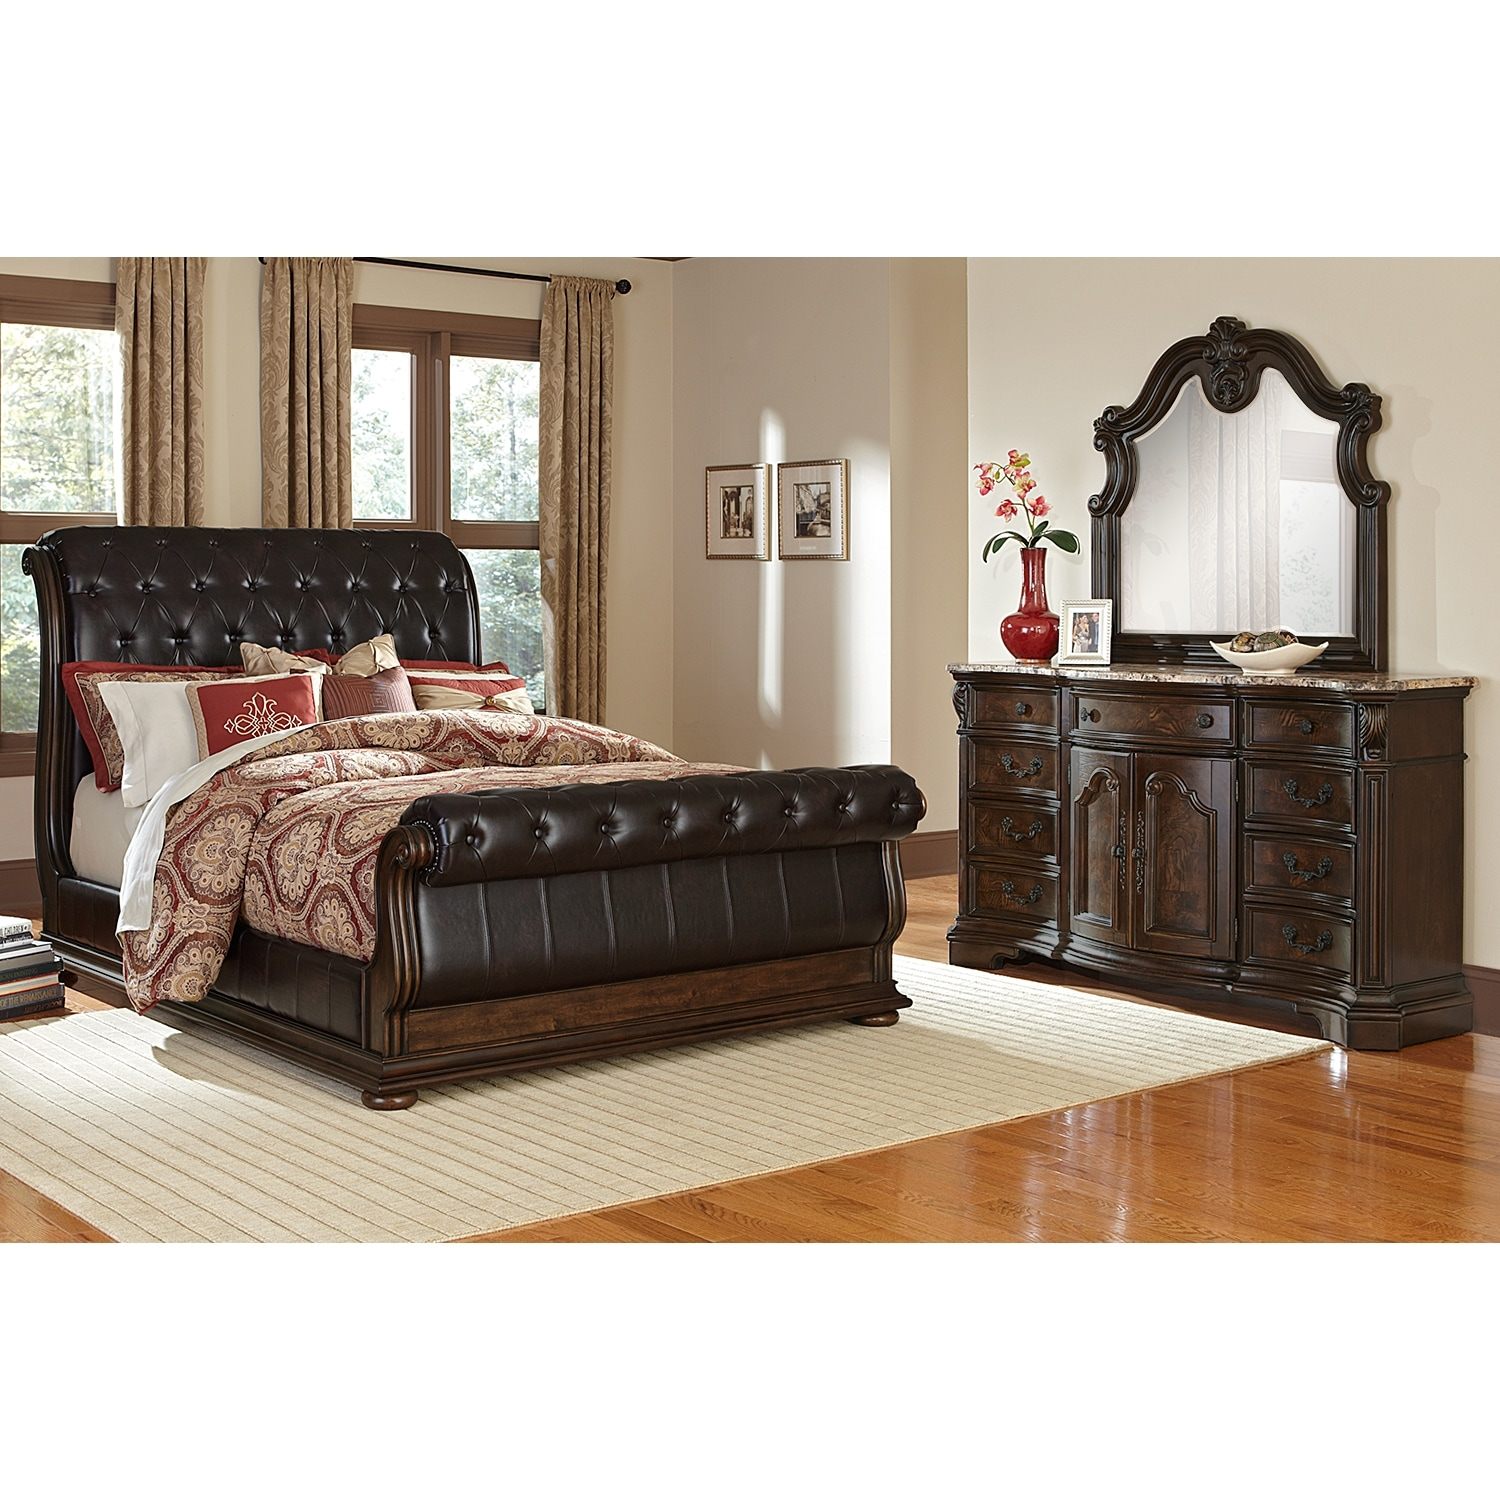 [Monticello Pecan II 5 Pc. Queen Bedroom]